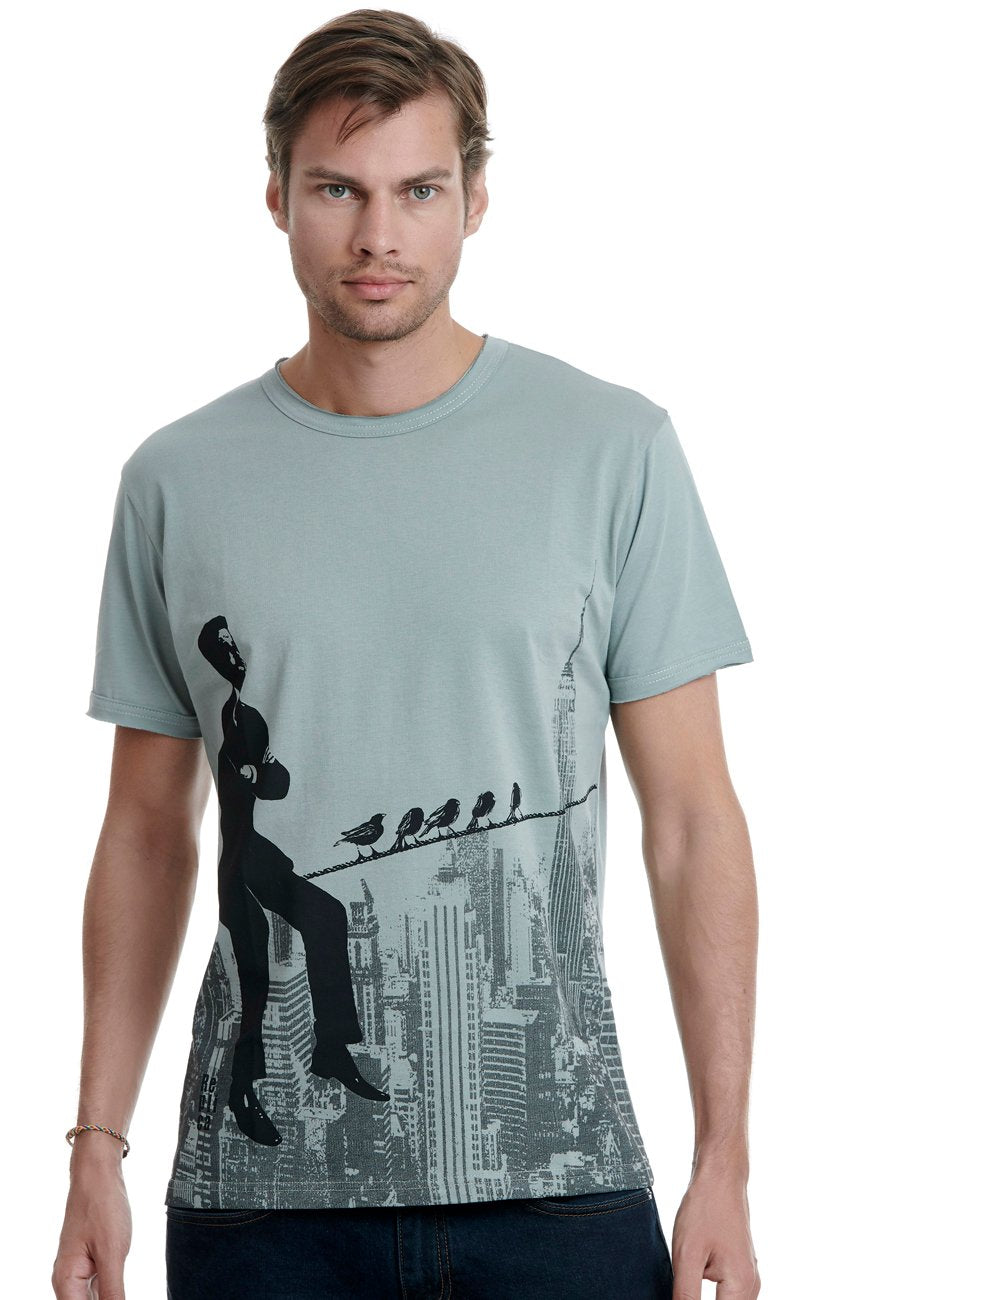 Skyline Replica tshirt Greece grey